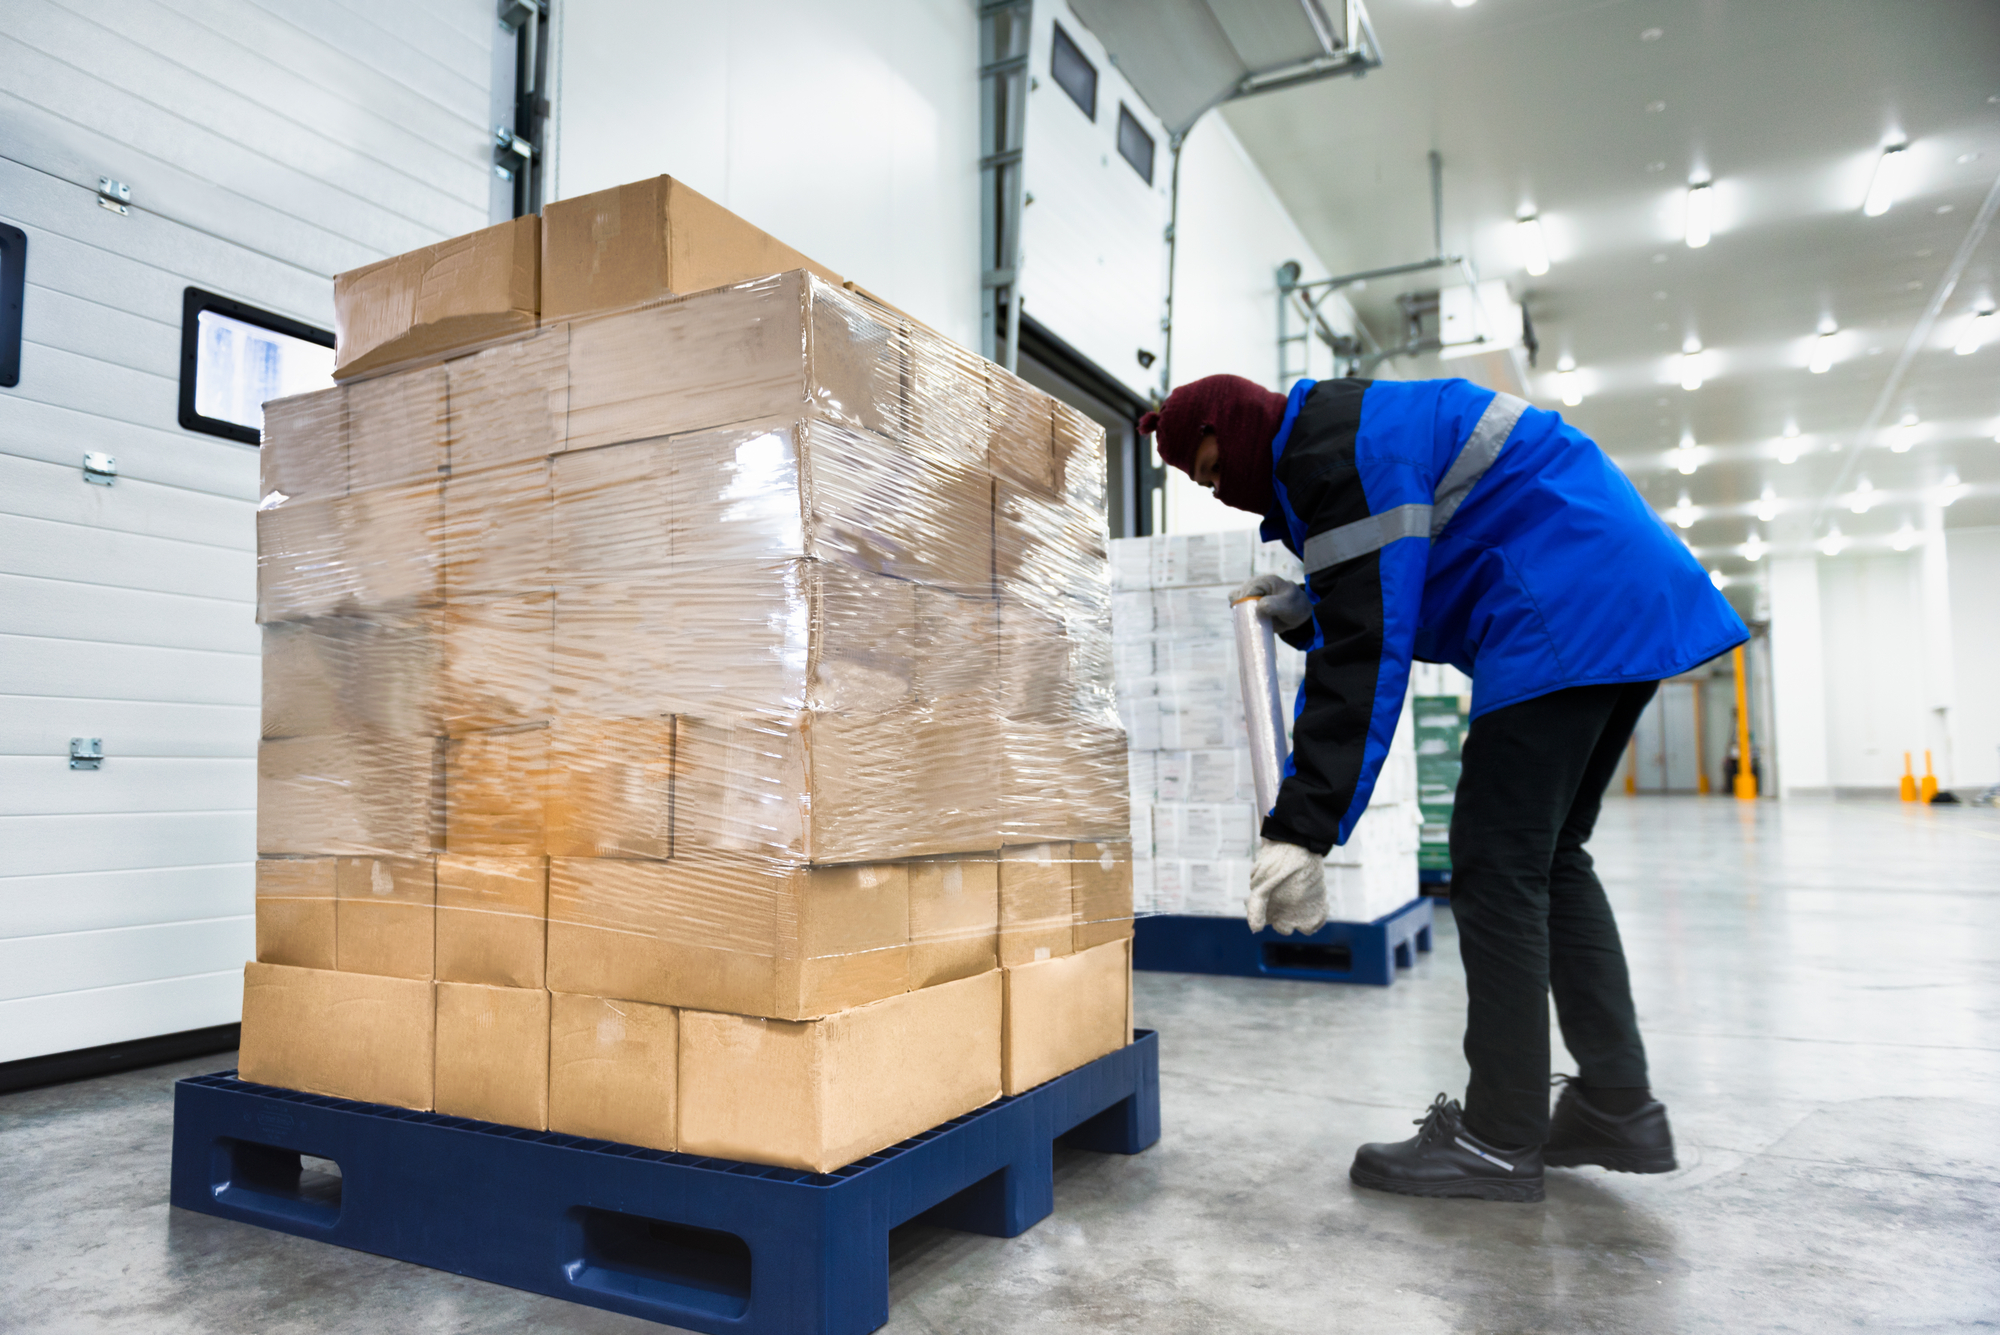 Plastic wrapper roll to packaging in loading goods of the freezing warehouse. Storage for Ready-made foods or Ready-to-Eat Foods. Export-Import Logistics system concept.